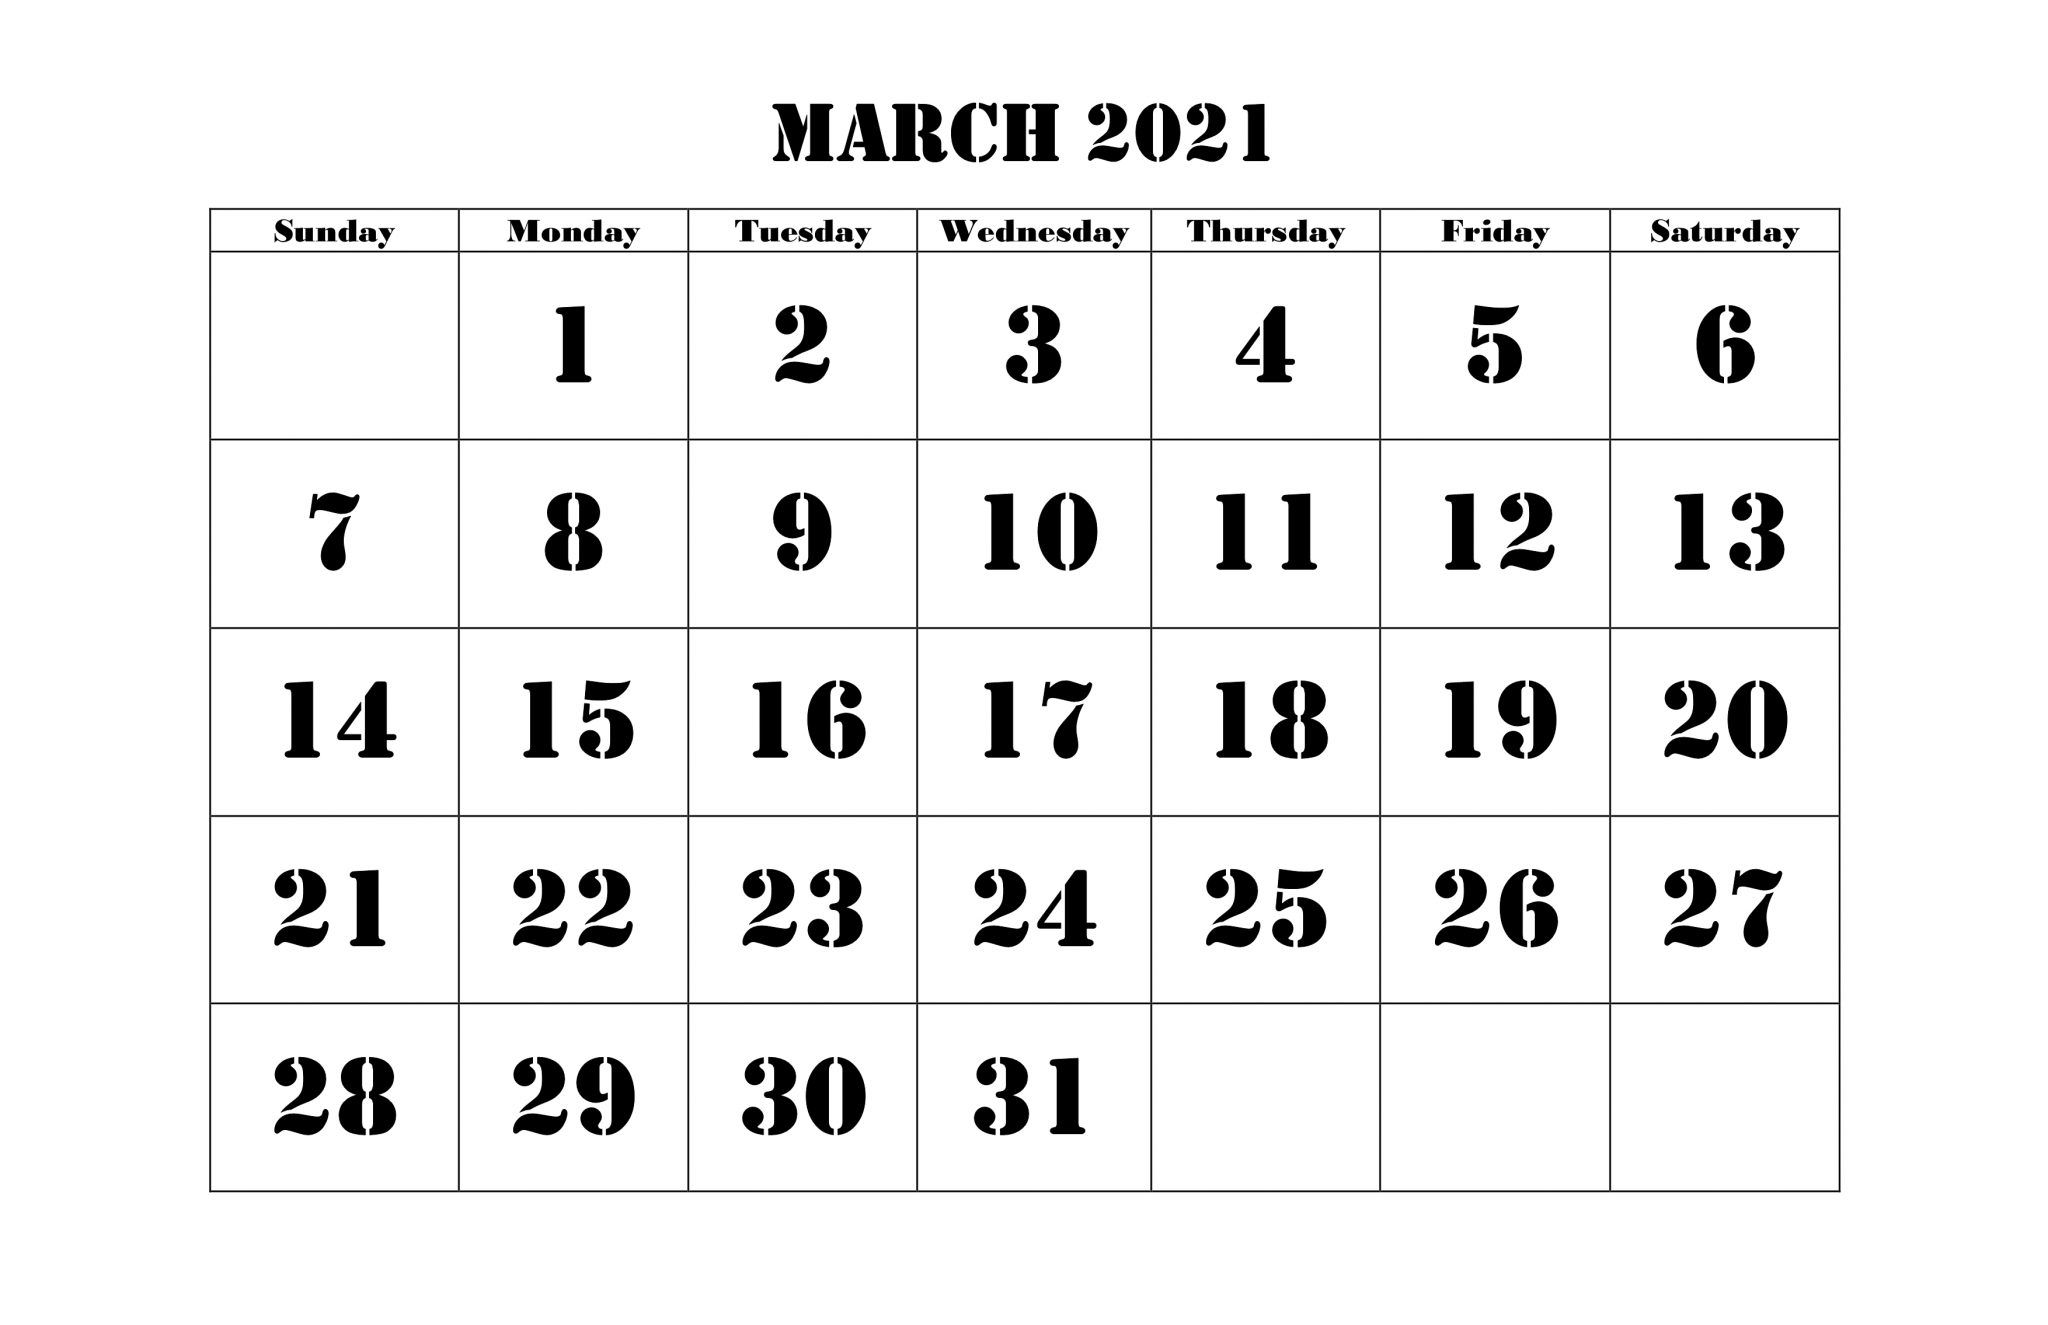 March 2021 Calendar Template Editable With Notes In 2020 2021